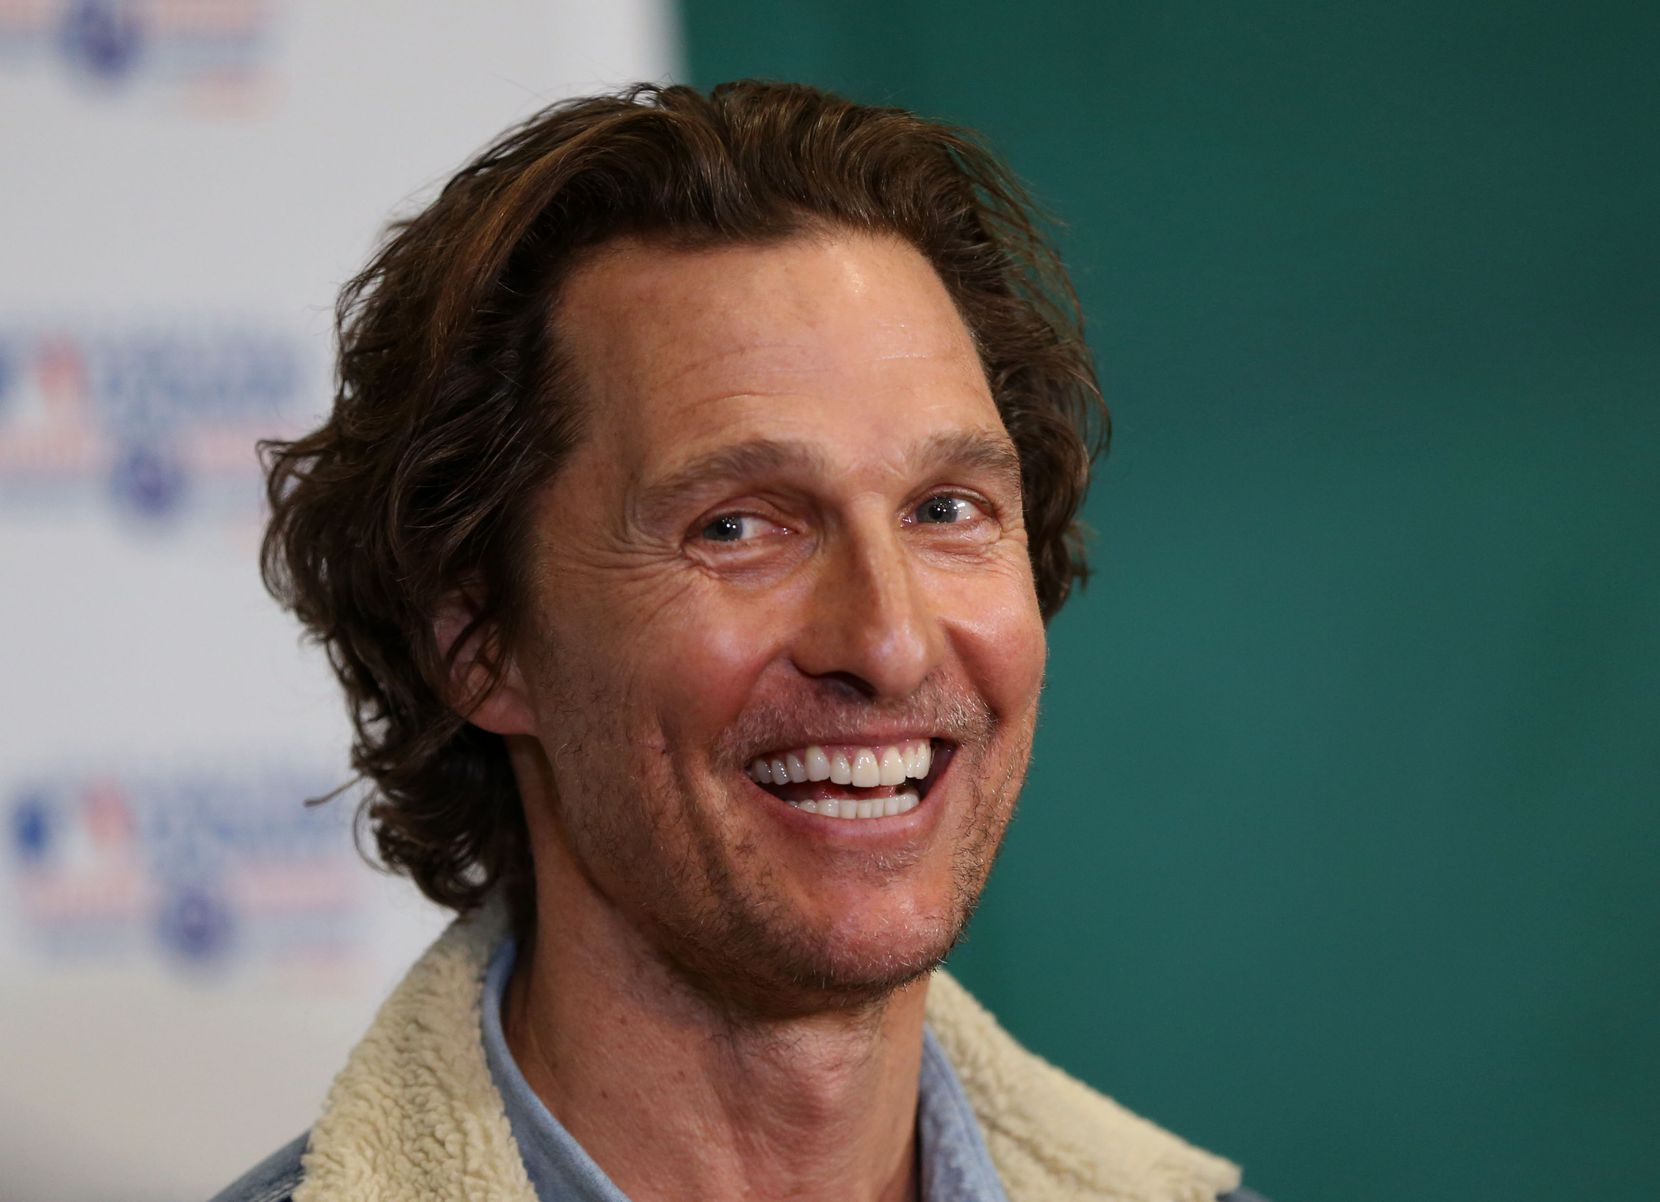 Matthew McConaughey speaks to the media during a Rangers Play Ball event for students from Sam Houston High School, Pinkston High School and Eastern Hills High School hosted by the Just Keep Livin Foundation, founded by McConaughey, and the Texas Rangers Baseball Foundation at the Texas Rangers Youth Academy at the Mercy Street Sports Complex in Dallas on Tuesday, March 5, 2019. (Rose Baca/Staff Photographer)